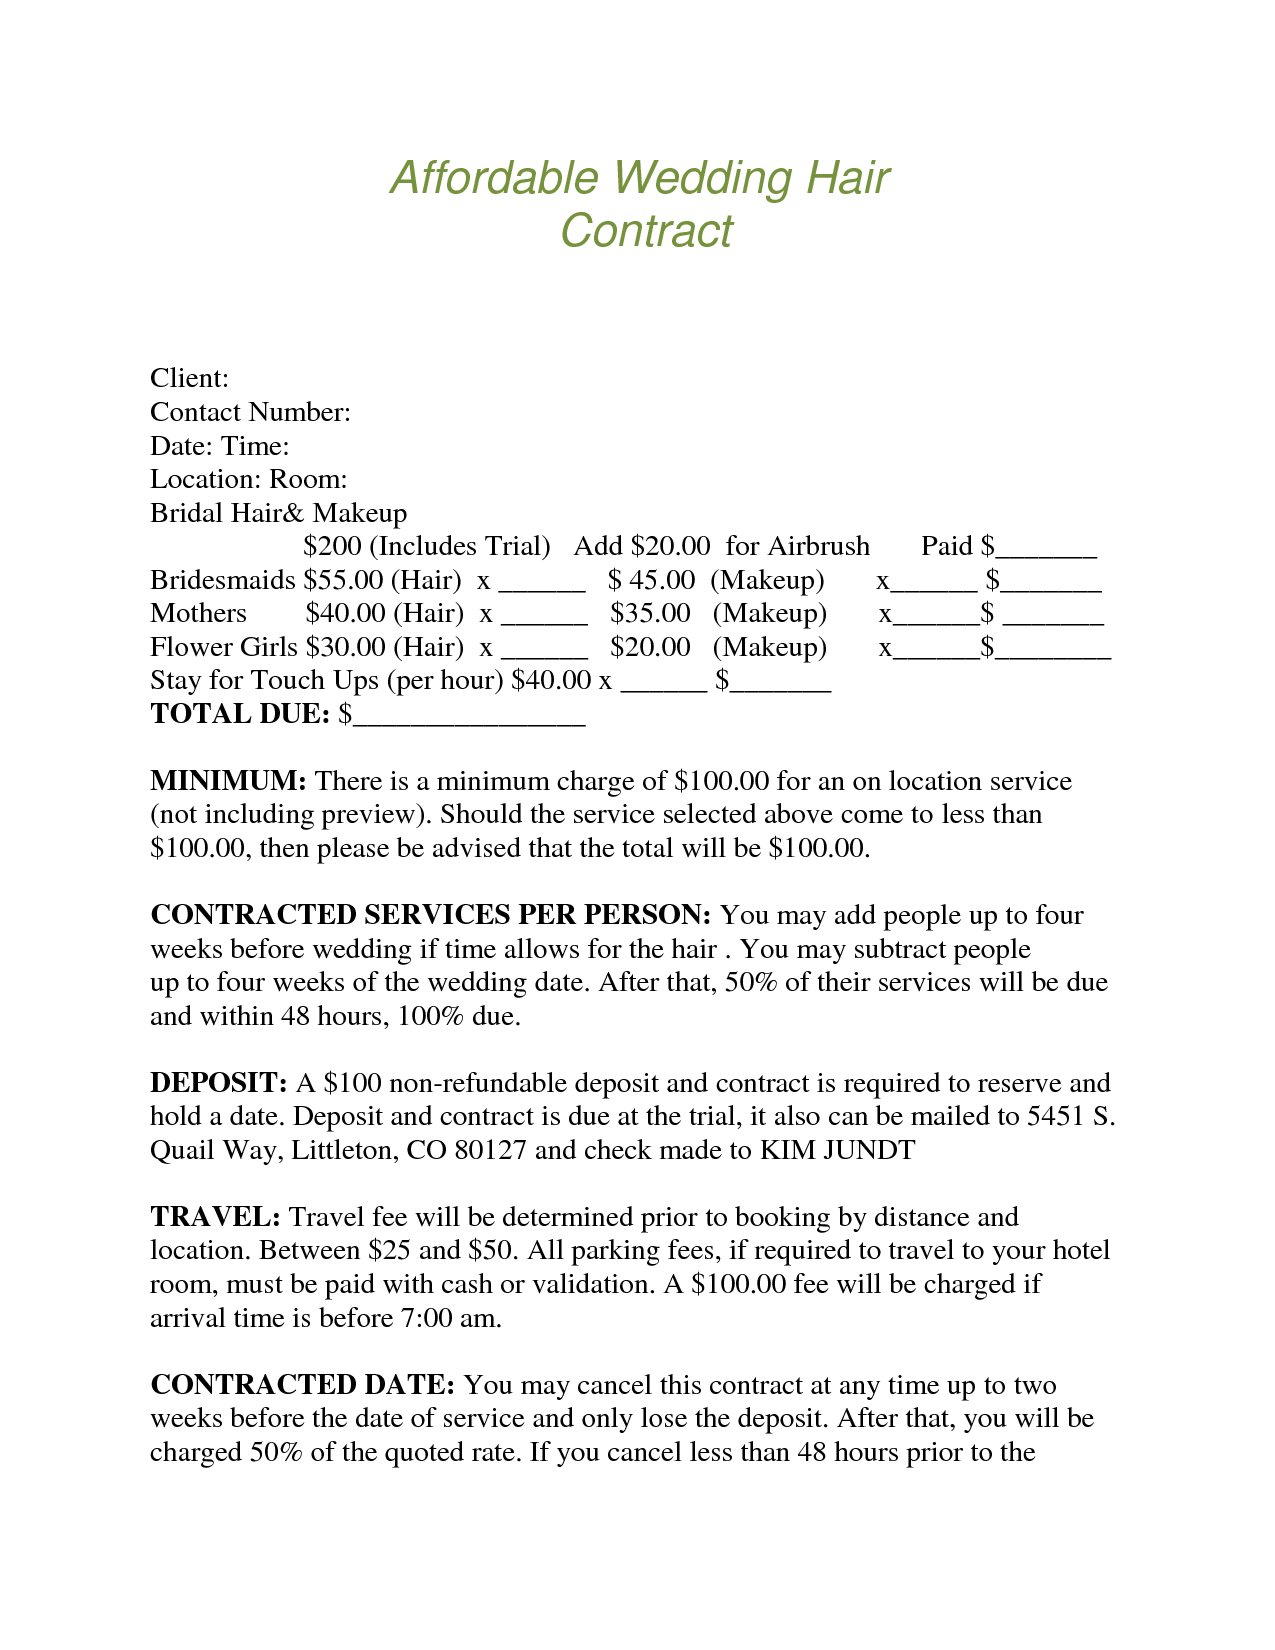 bridalhaircotract | affordable wedding hair contract client